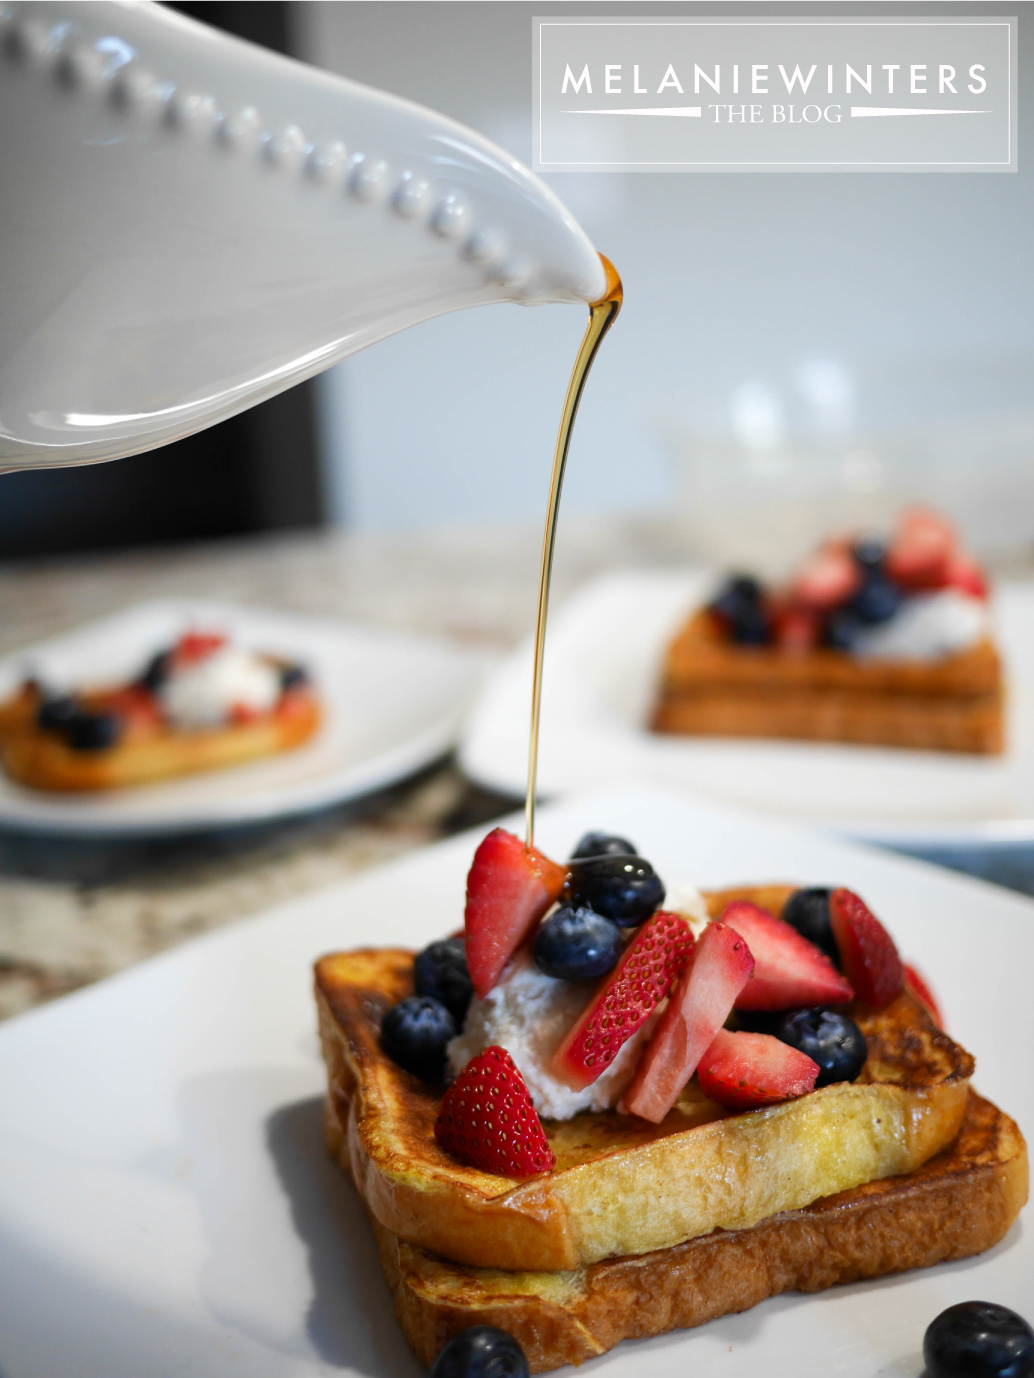 A 4-ingredient cheesecake topping and fresh berries make this french toast everyone's new favorite brunch dish.